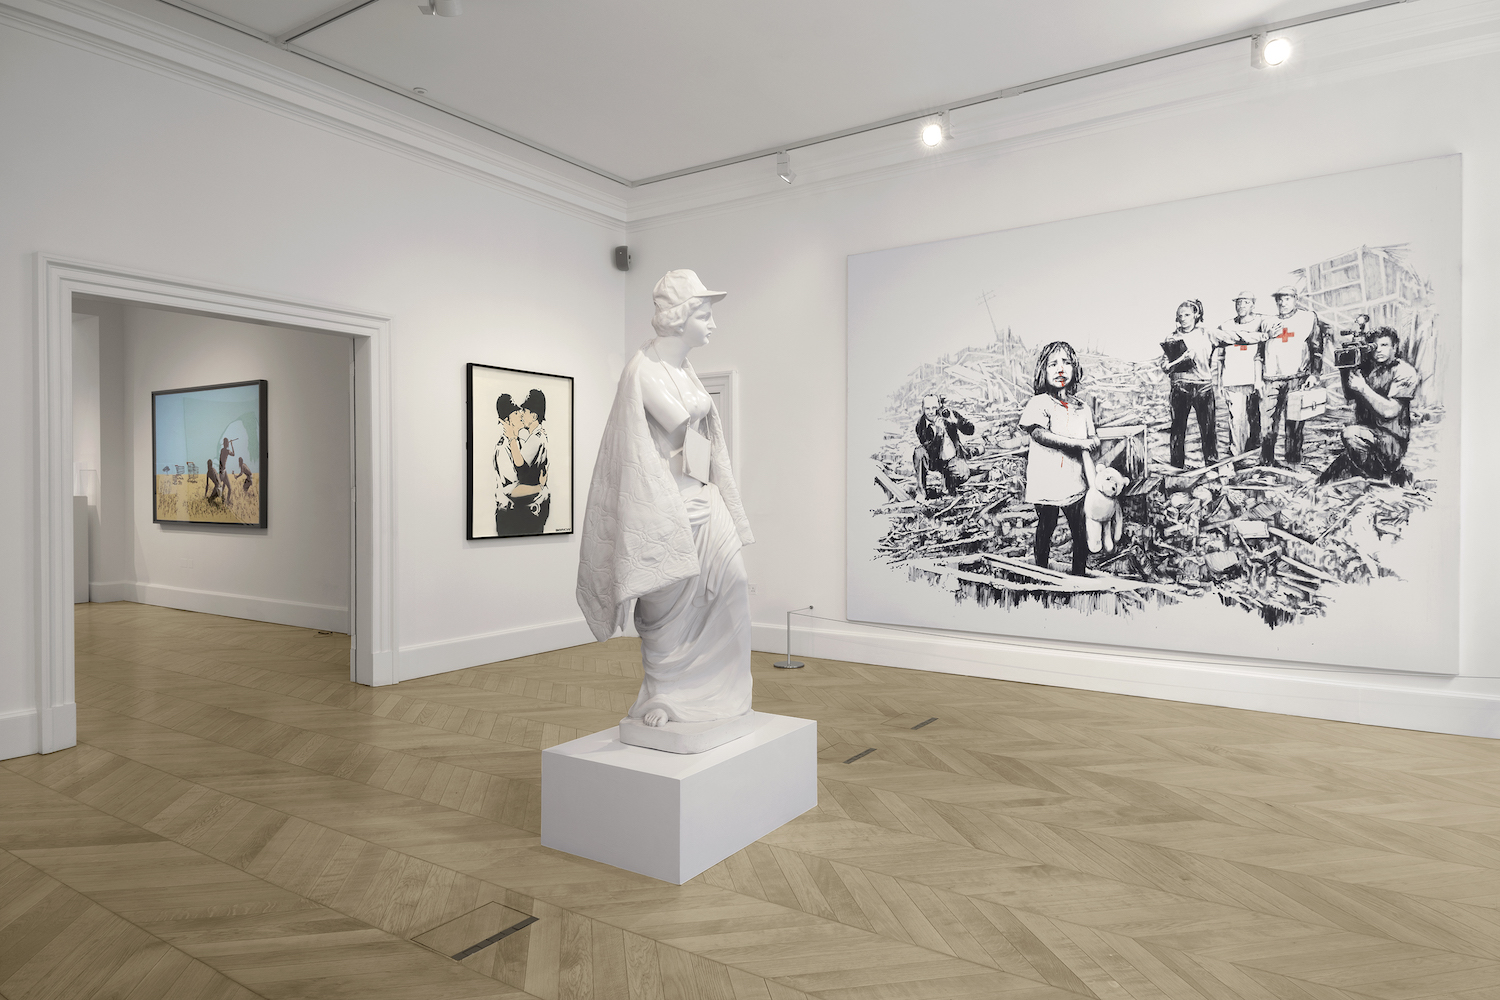 Banksy's Greatest Hits at Lazinc, installation view. Image courtesy of Lazinc